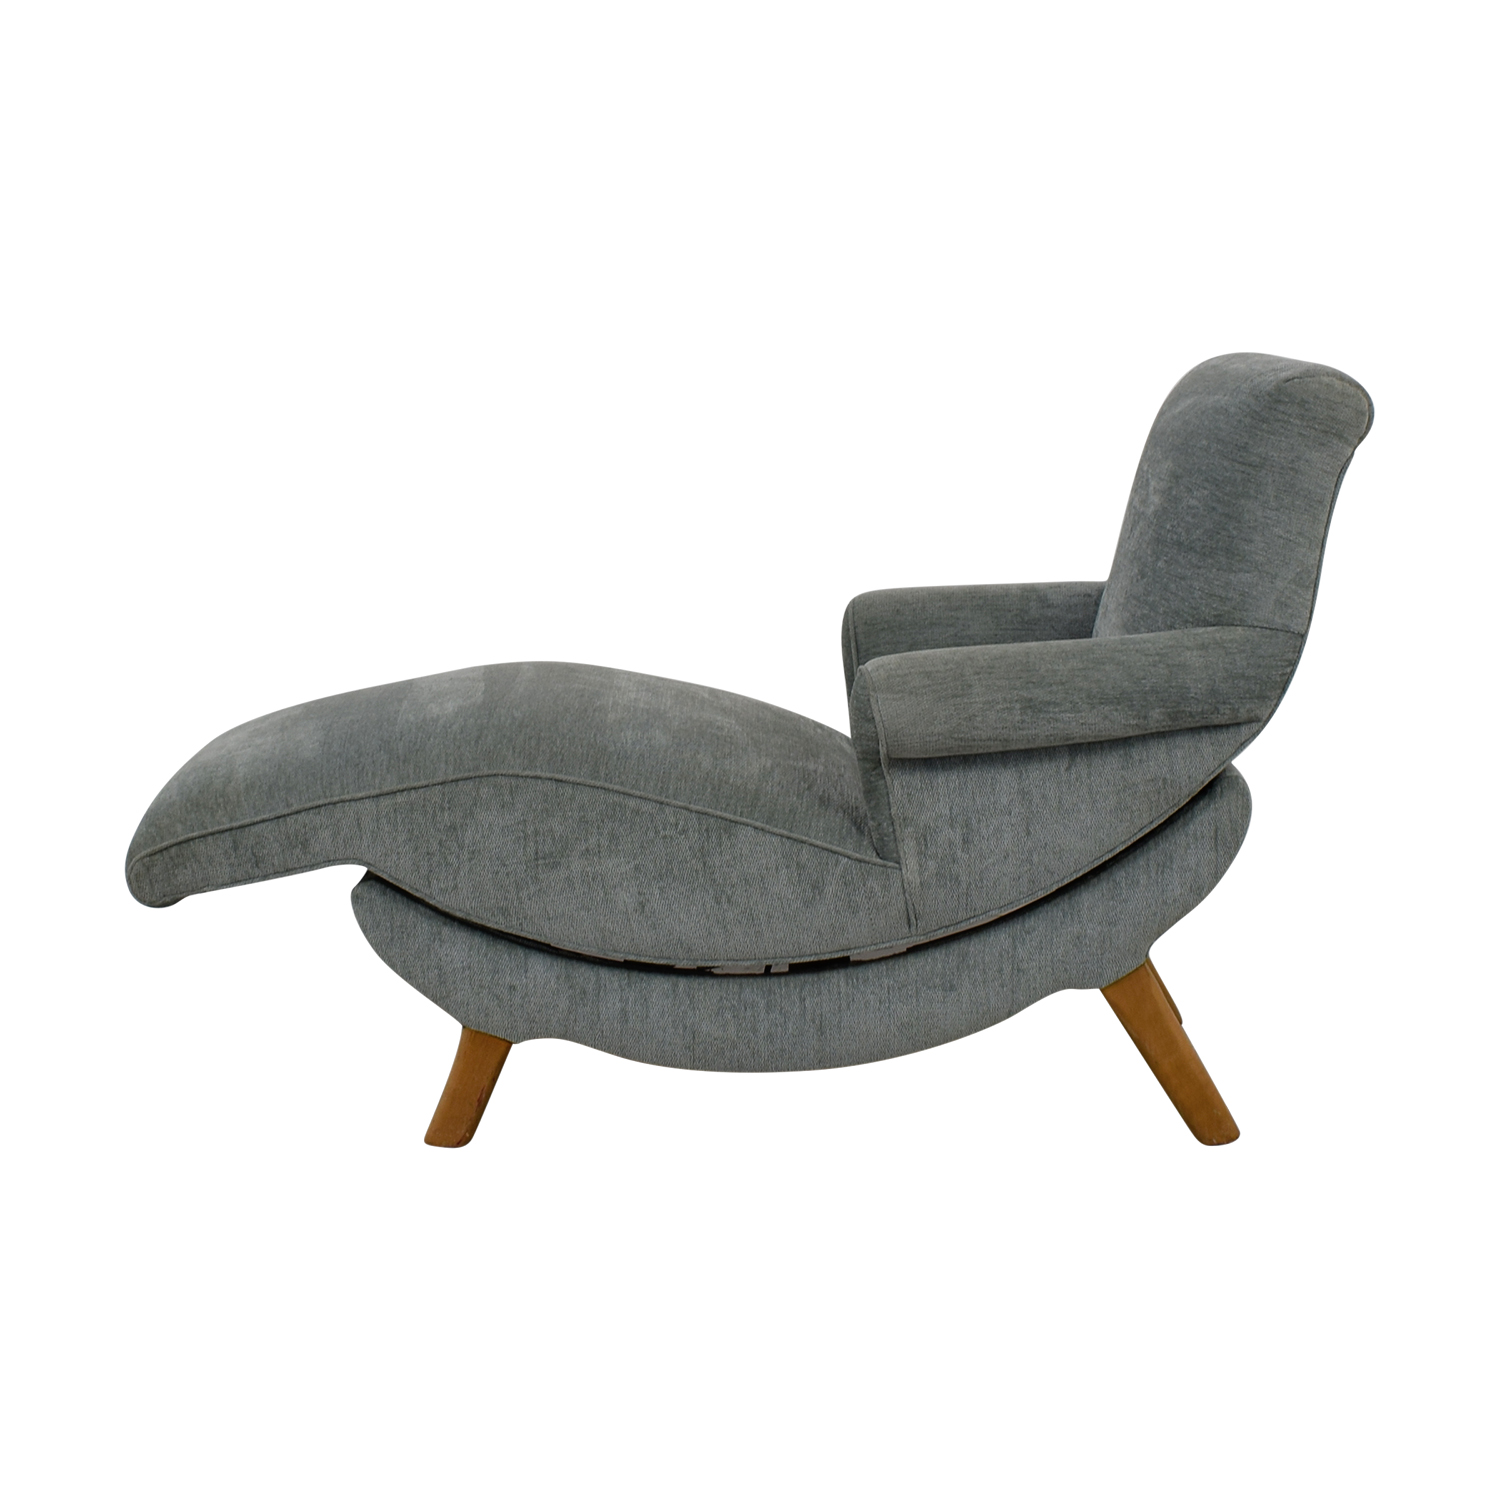 buy Contour Lounge Chair Company Lounge Chair Contour Lounge Chair Company